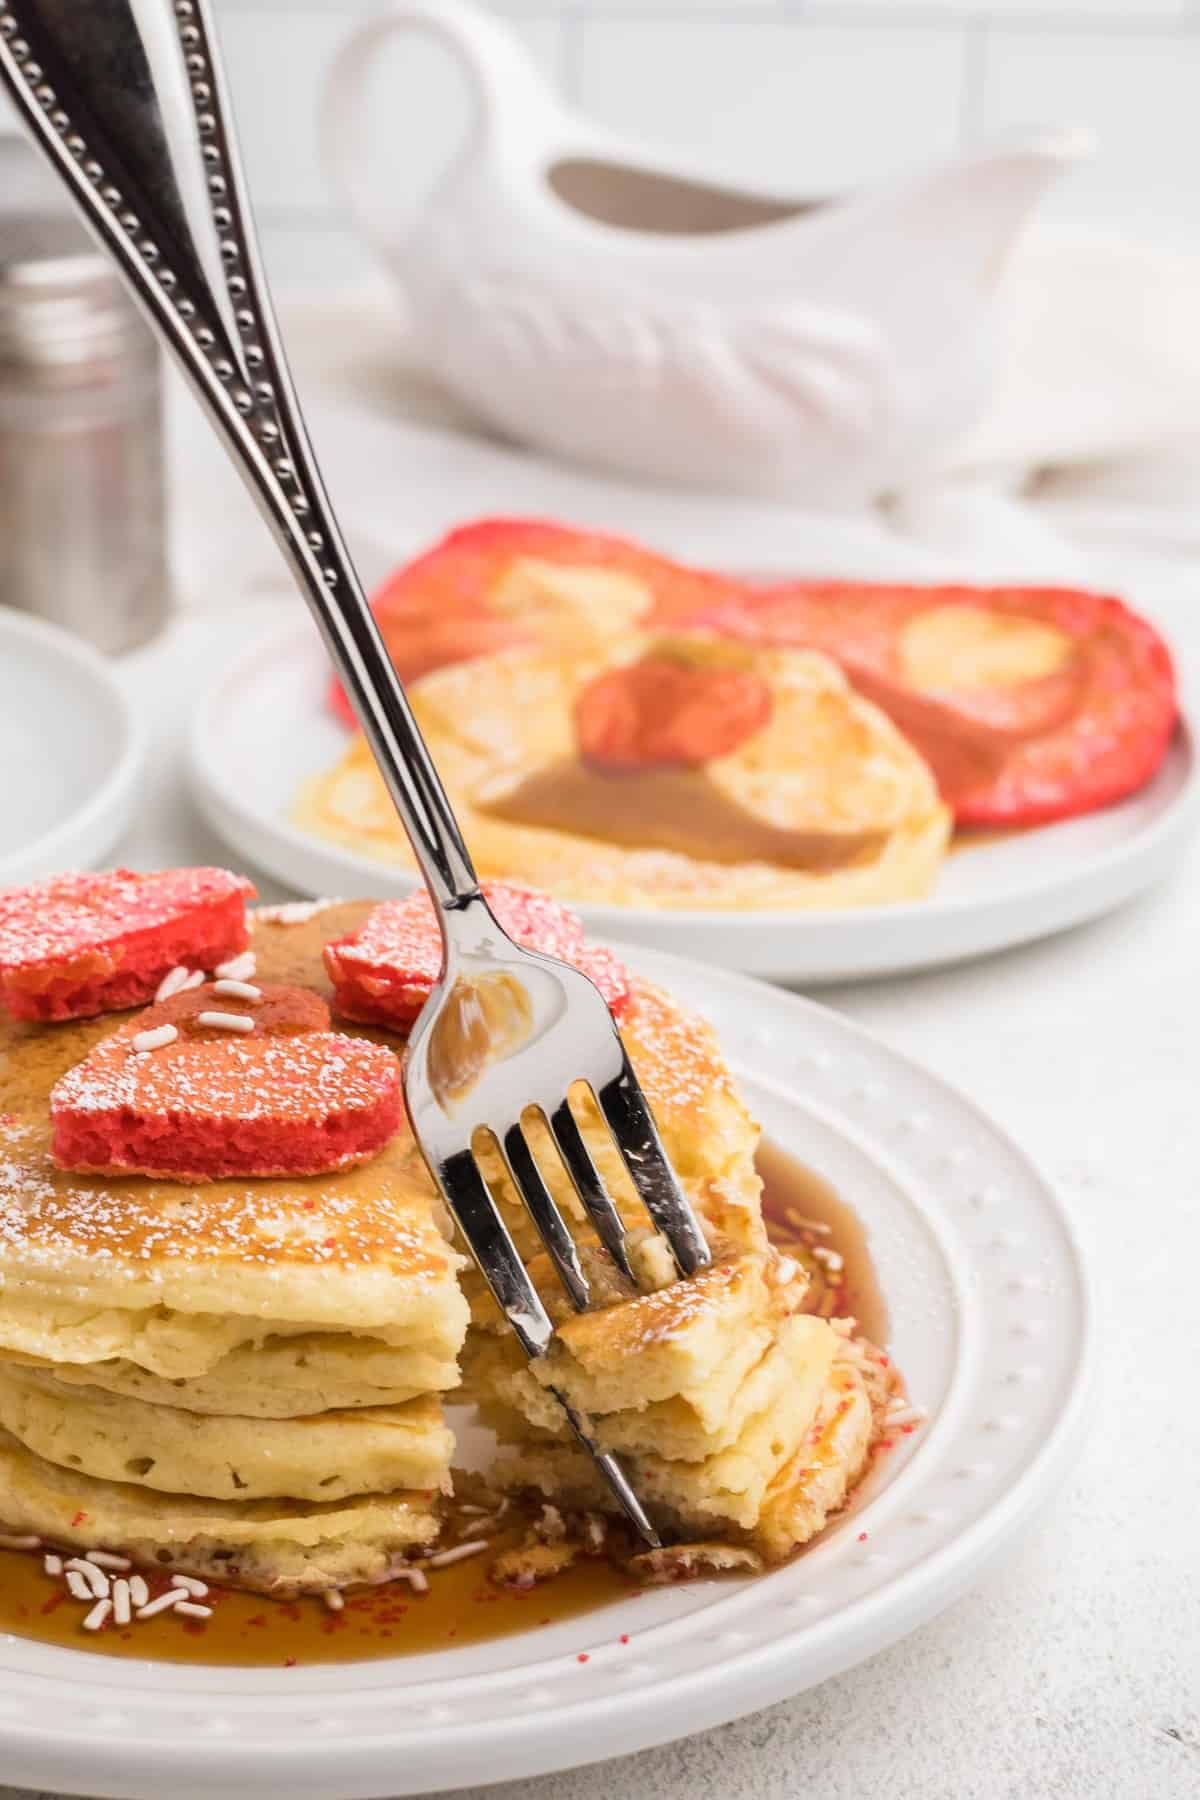 Pancakes being picked up with a fork.